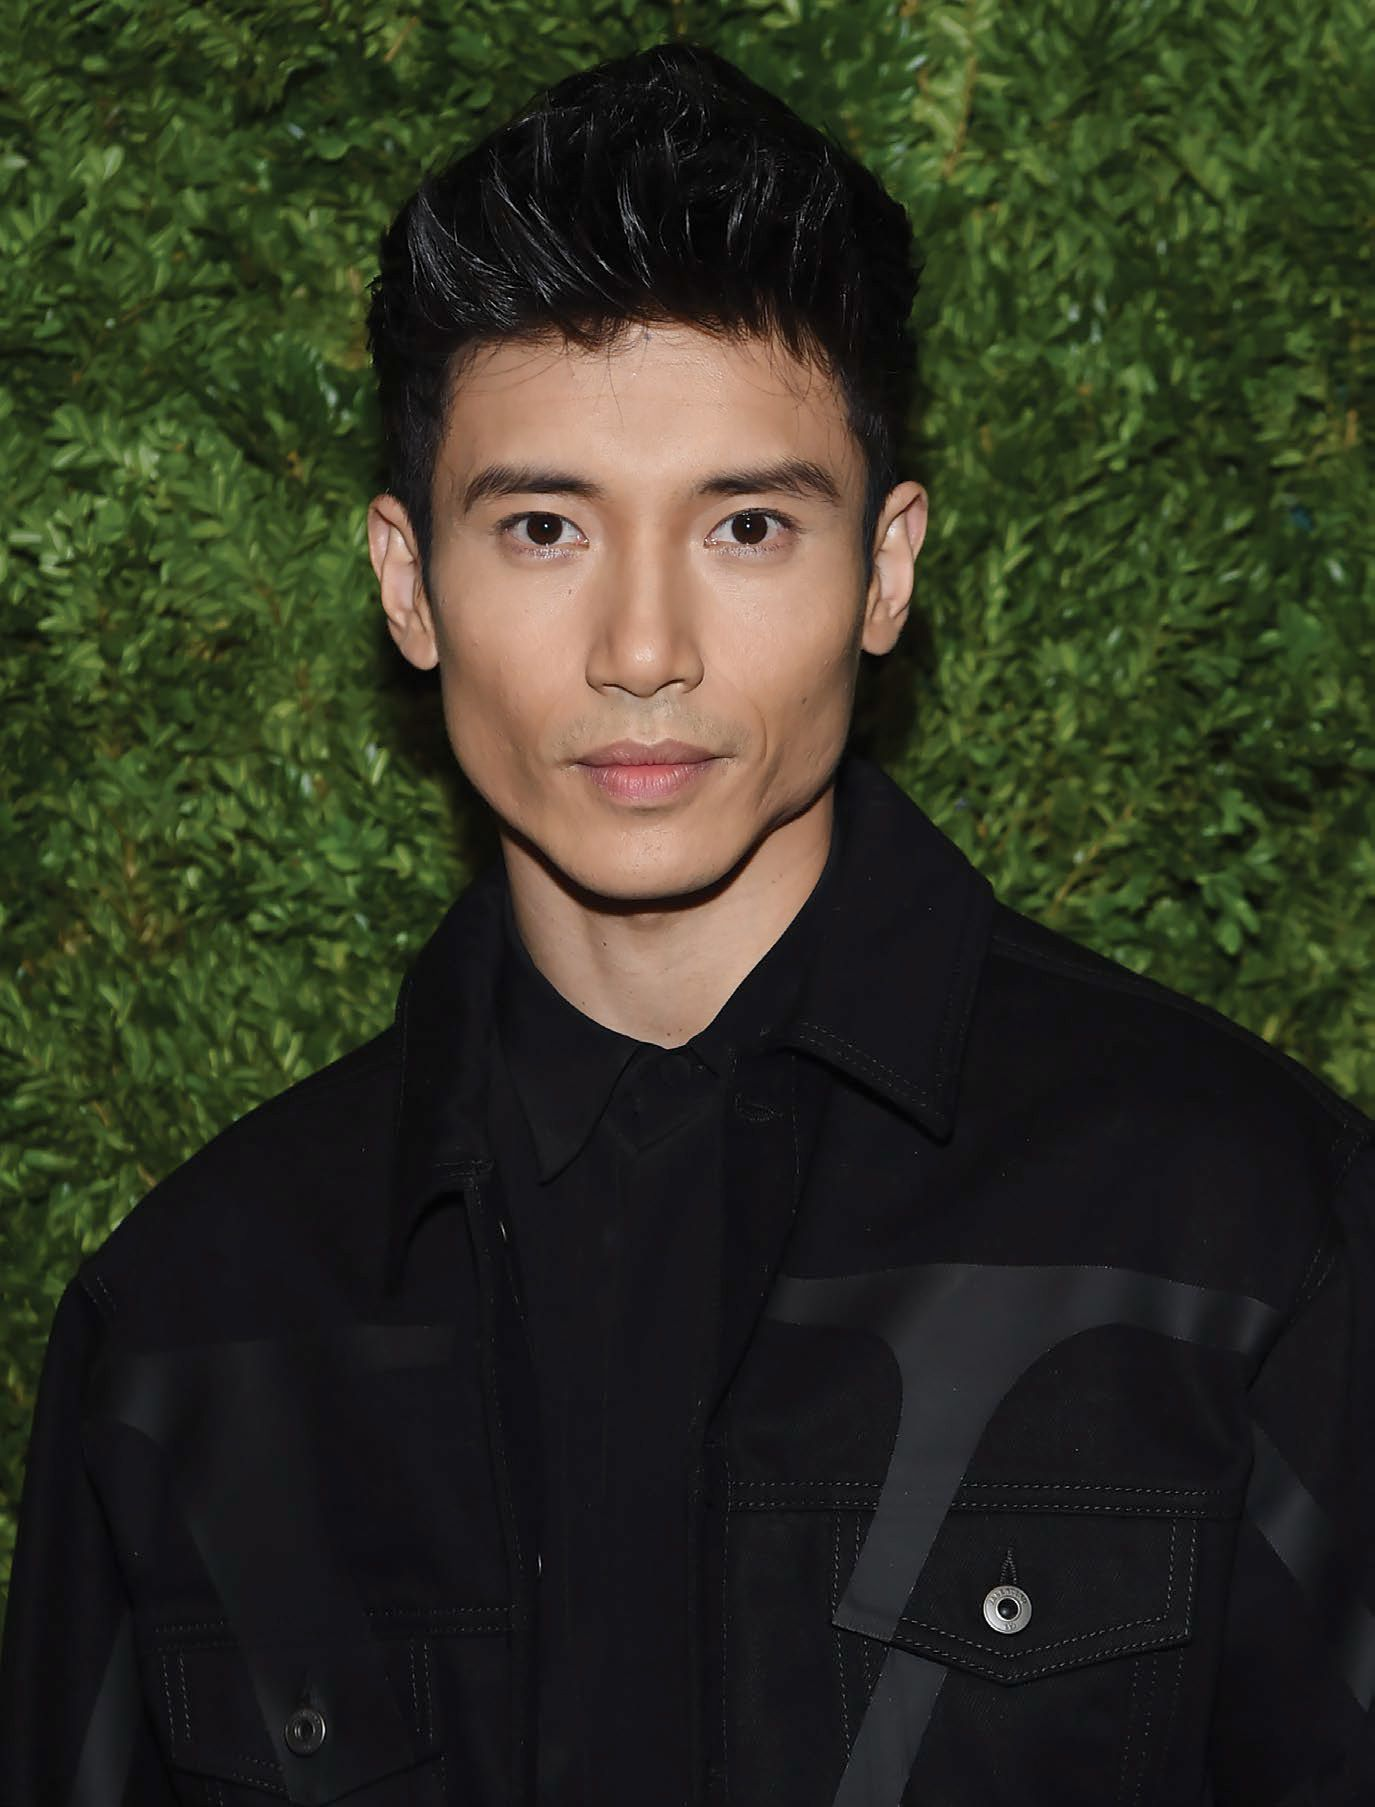 NEW YORK, NEW YORK - NOVEMBER 04: Manny Jacinto attends the CFDA / Vogue Fashion Fund 2019 Awards at Cipriani South Street on November 04, 2019 in New York City. (Photo by Jamie McCarthy/Getty Images)